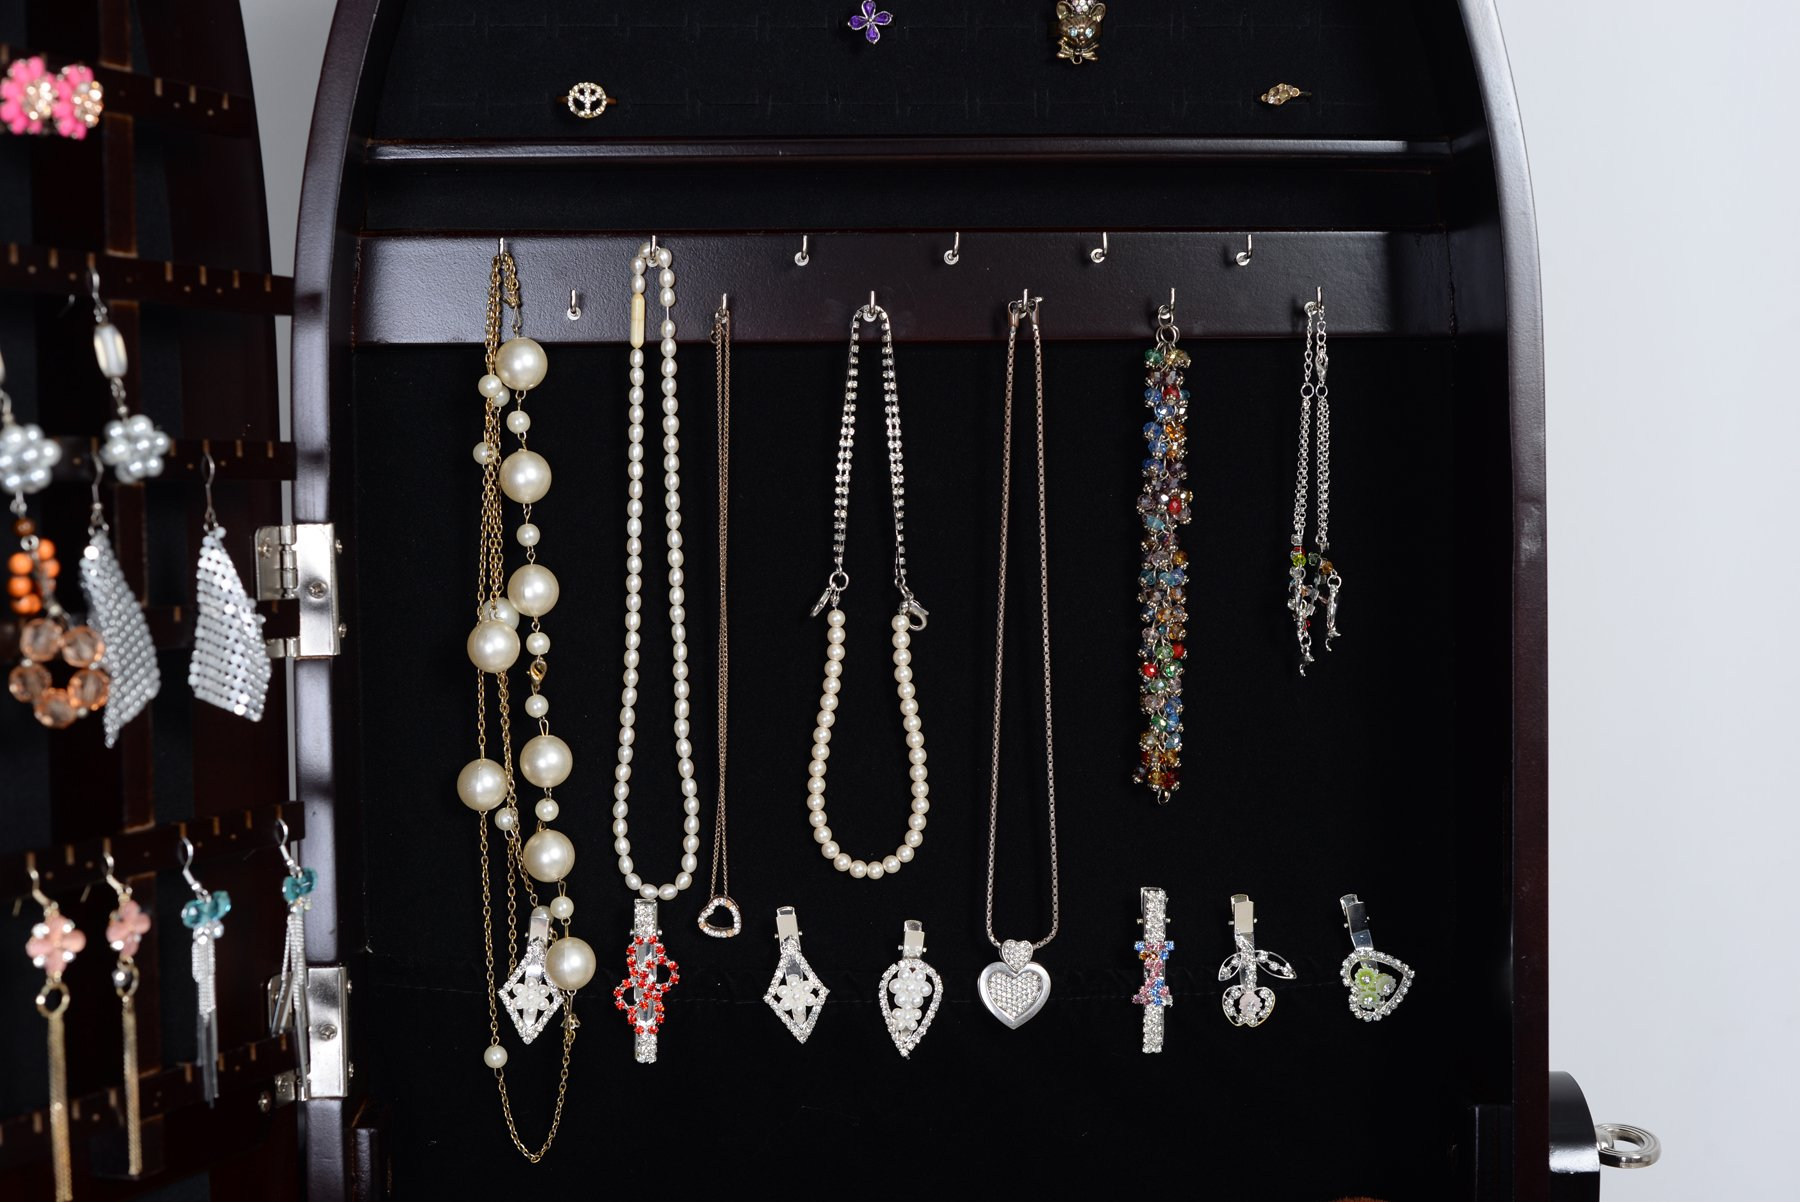 Organizedlife Brown Luxury Full Length Adjustable Mirror Oval Jewelry Armoire Cabinet with Drawers by Organizedlife (Image #5)